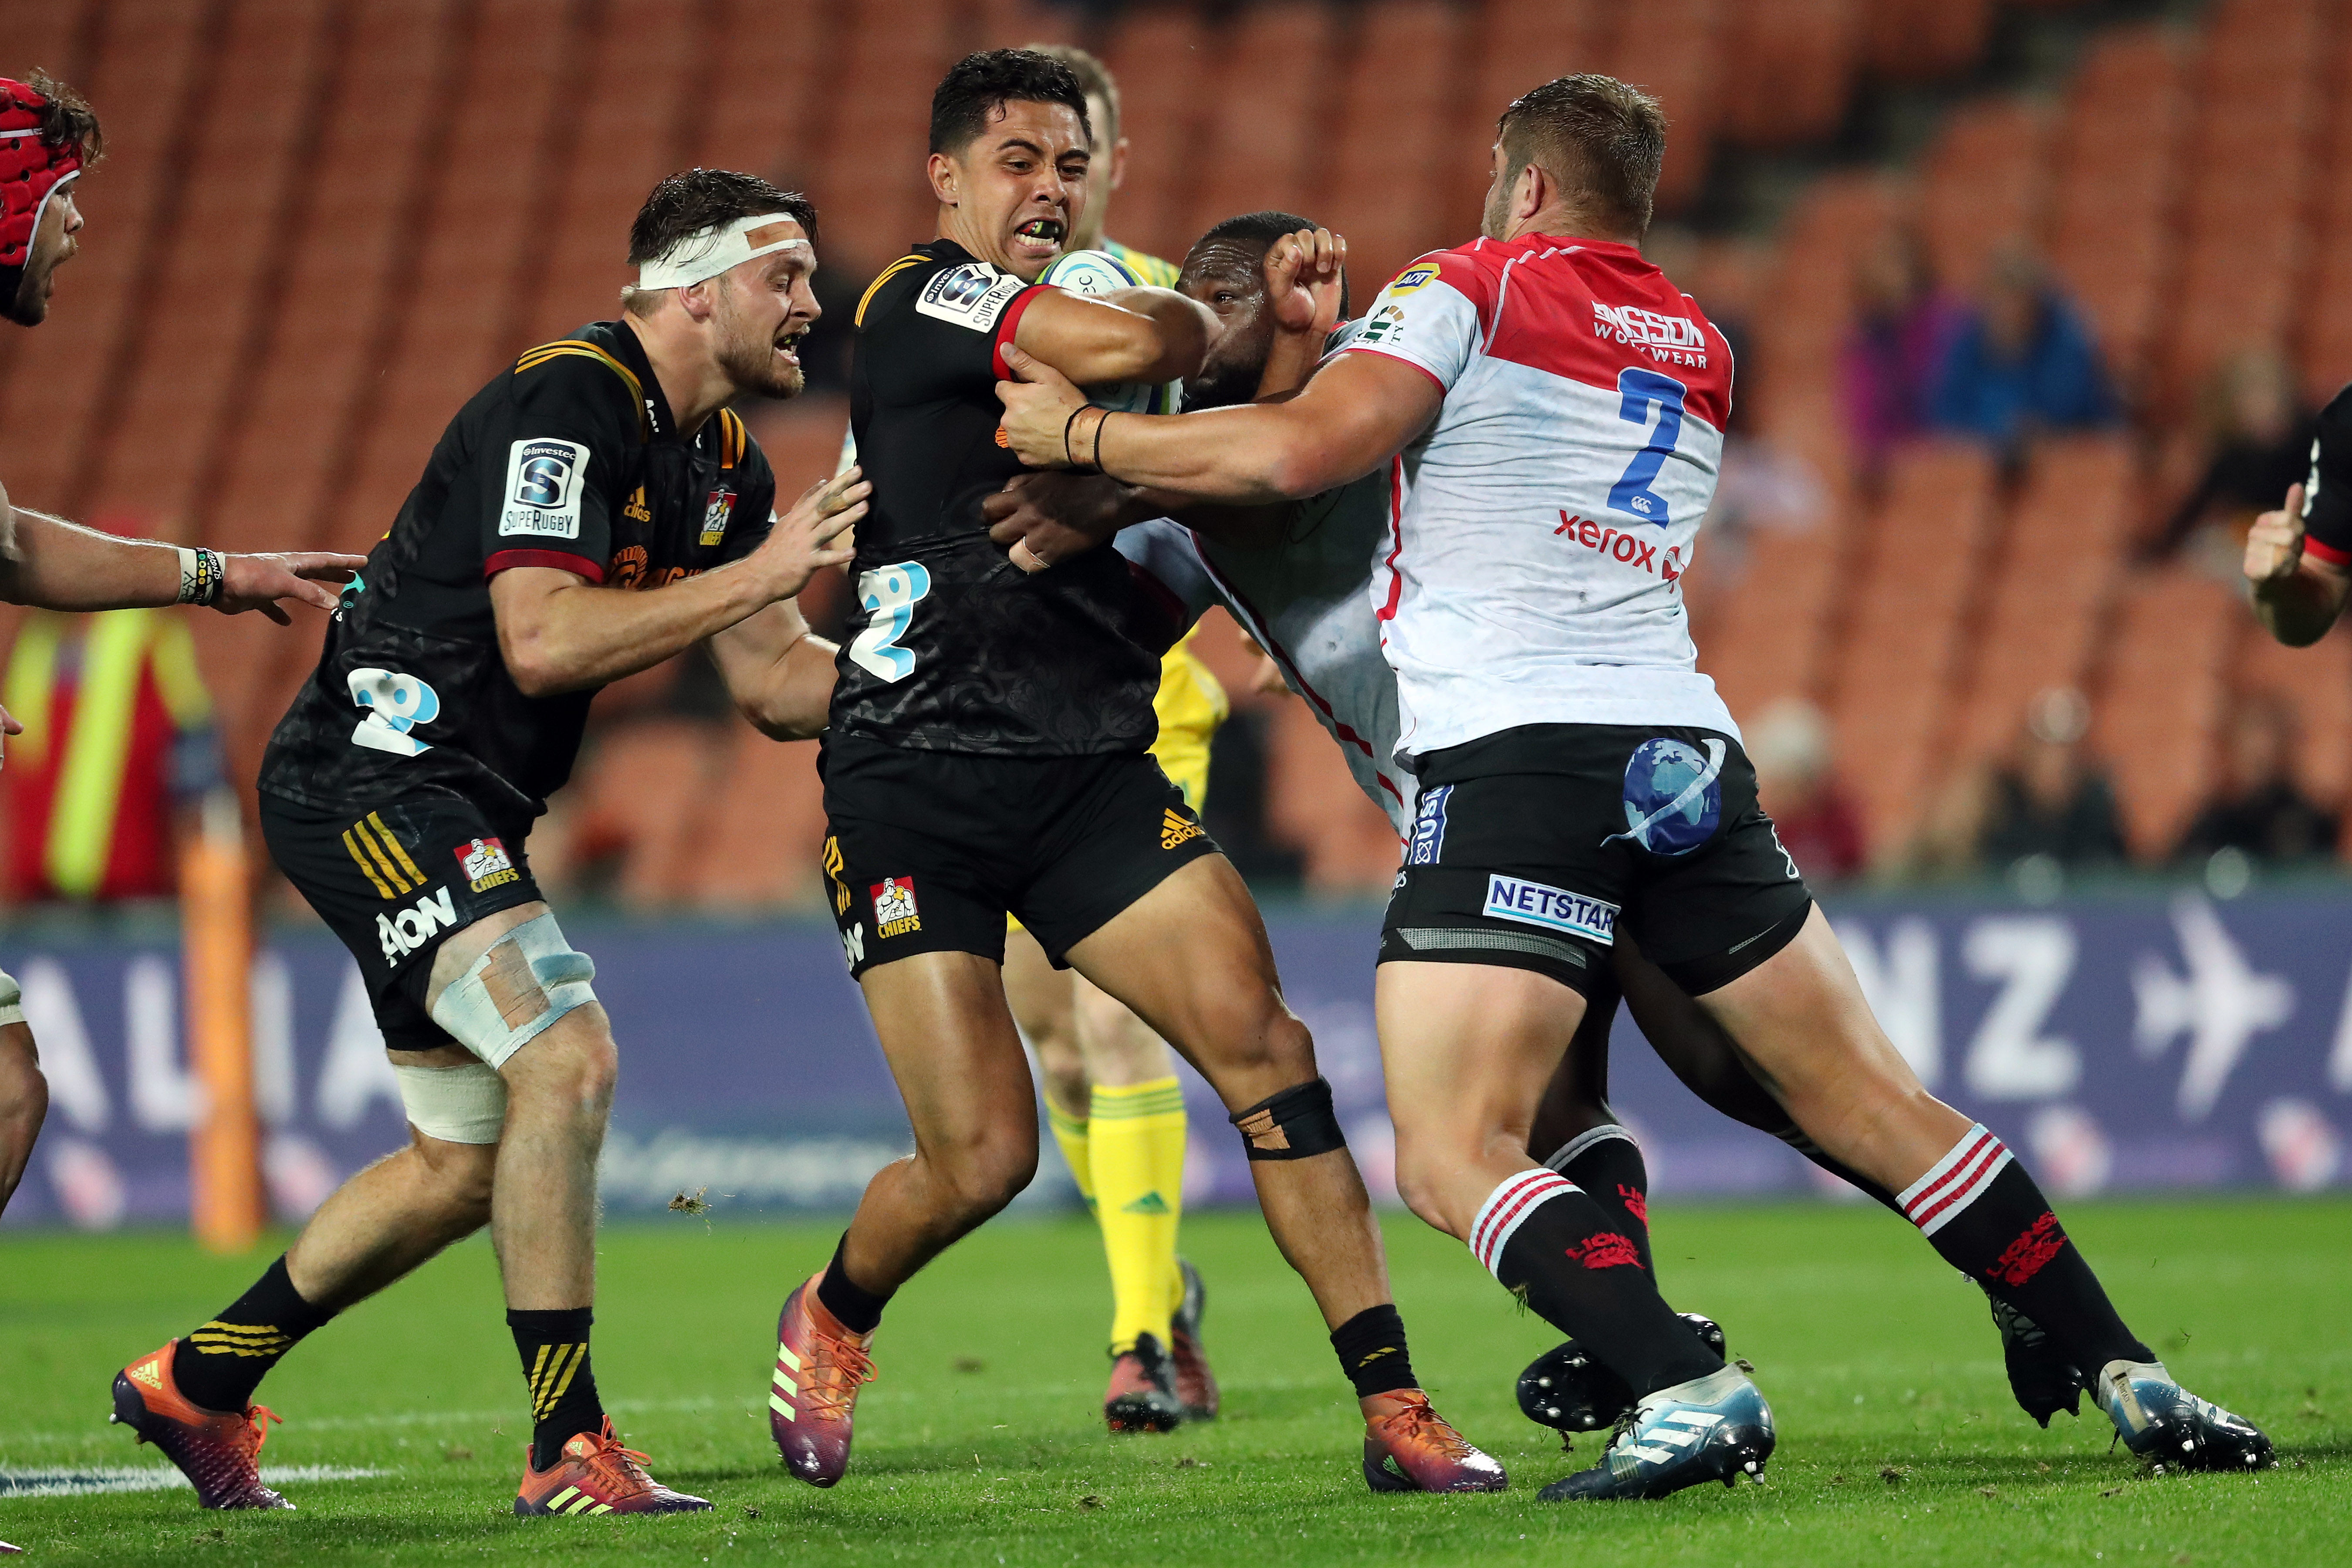 Golden lions rugby